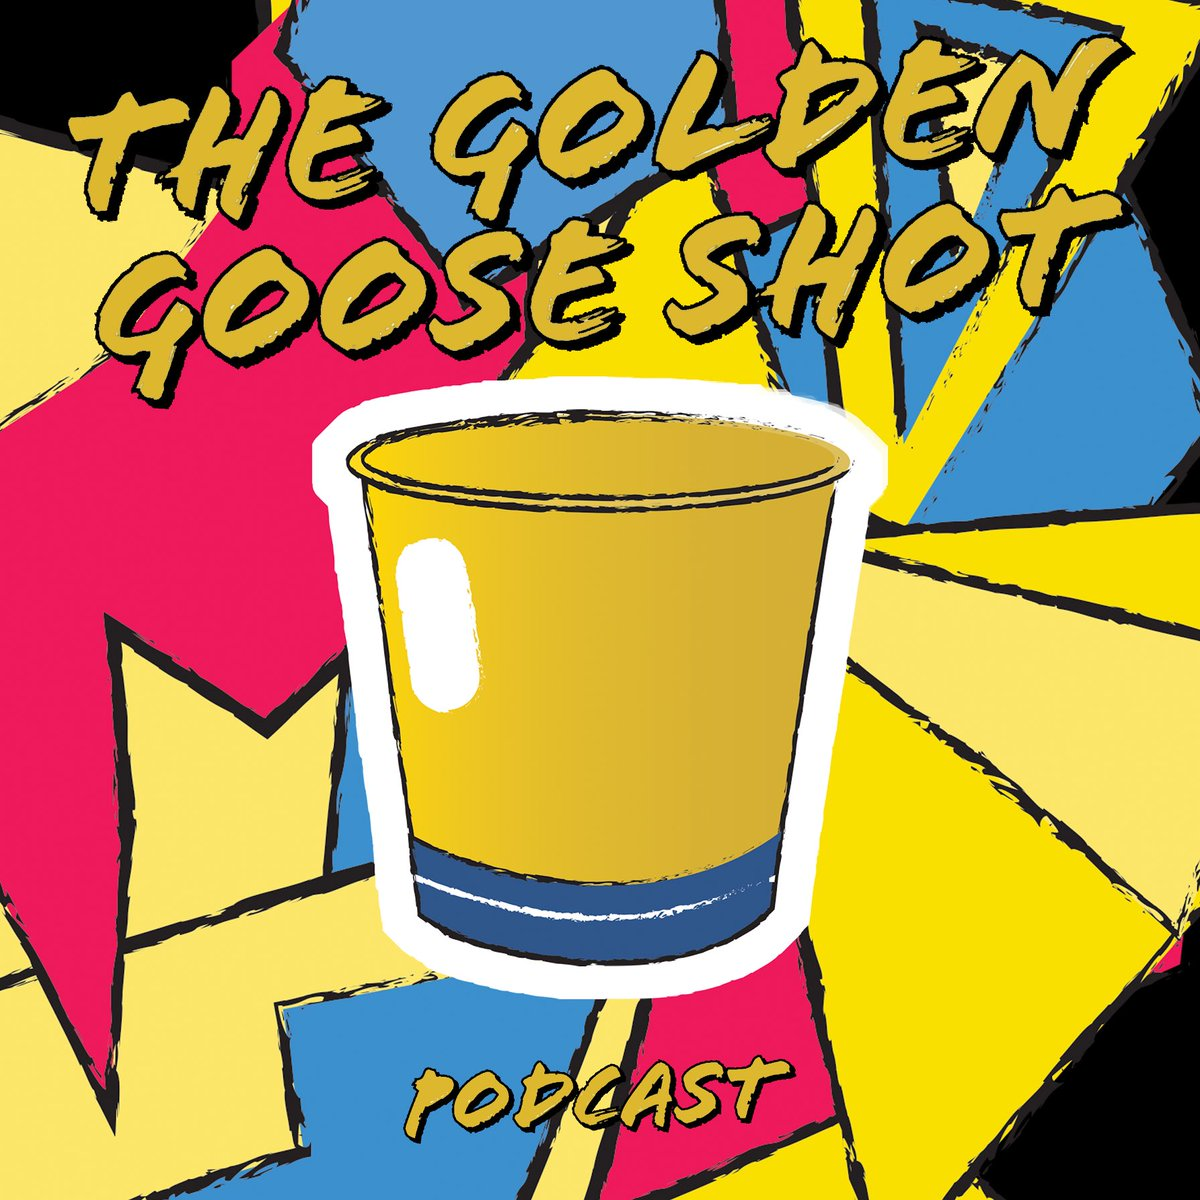 Welcome to The Golden Goose Shot Podcast!!   A podcast Aled, Jono and Josh have been working on over last month. The first 4 episodes are already out now with new ones released every Sunday. Go give it a listen on all major podcast streaming services. #podcast #launch #movies pic.twitter.com/cktnGANmWT